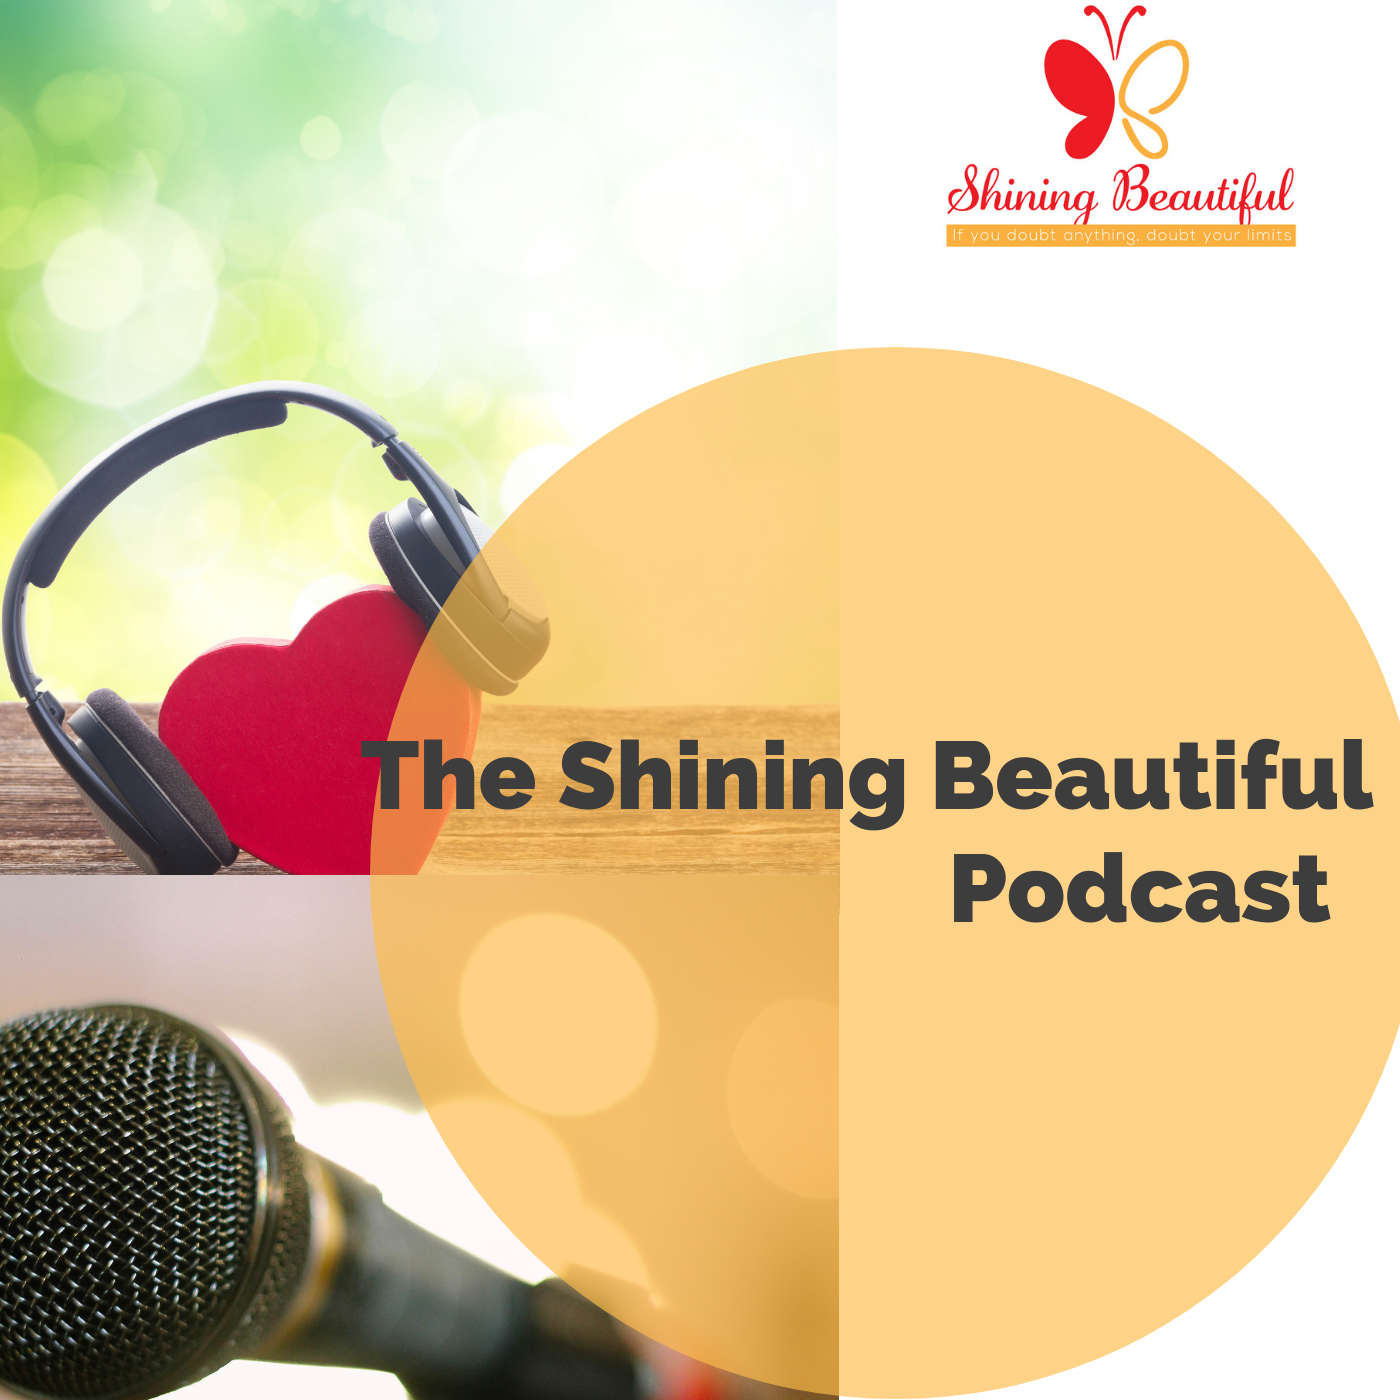 The Shining Beautiful Series Podcast show art